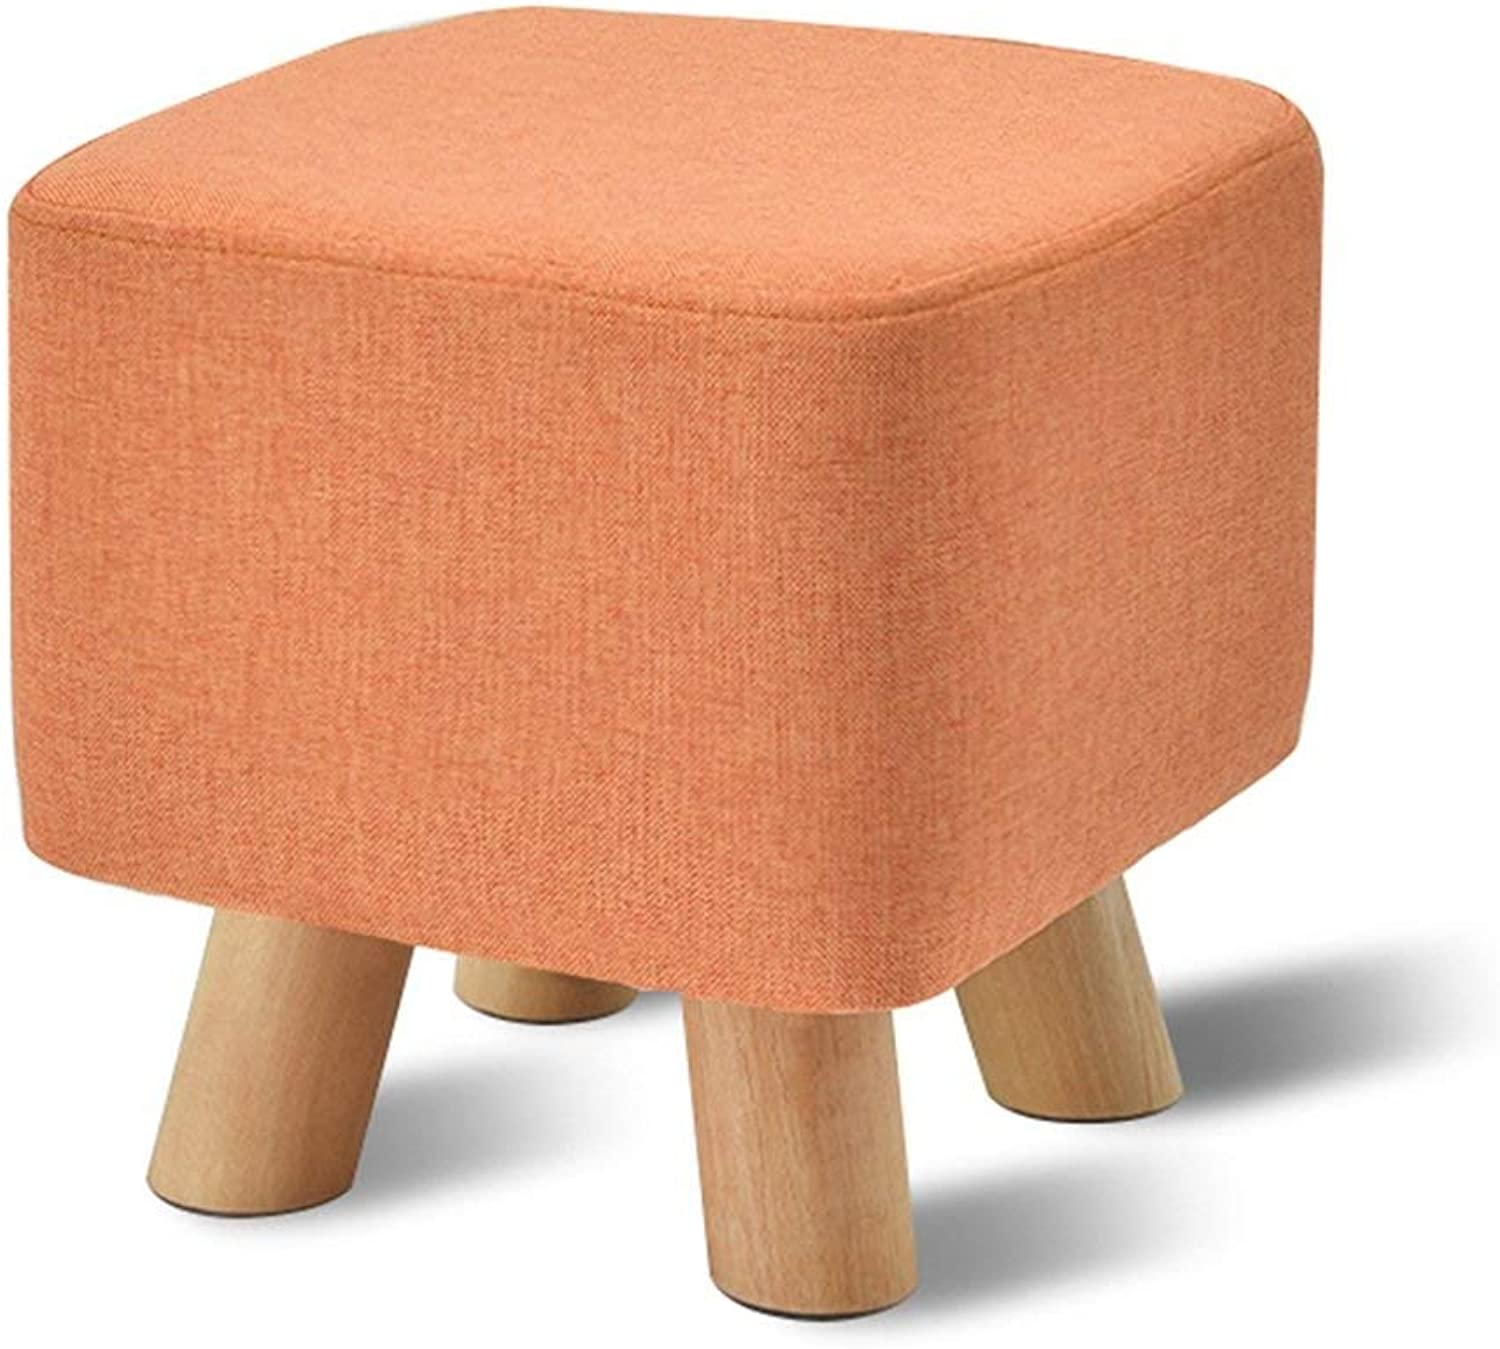 JZX Chair, Footstool, Solid Wood Home Stool, Fashion shoes Bench, Creative Sofa Stool